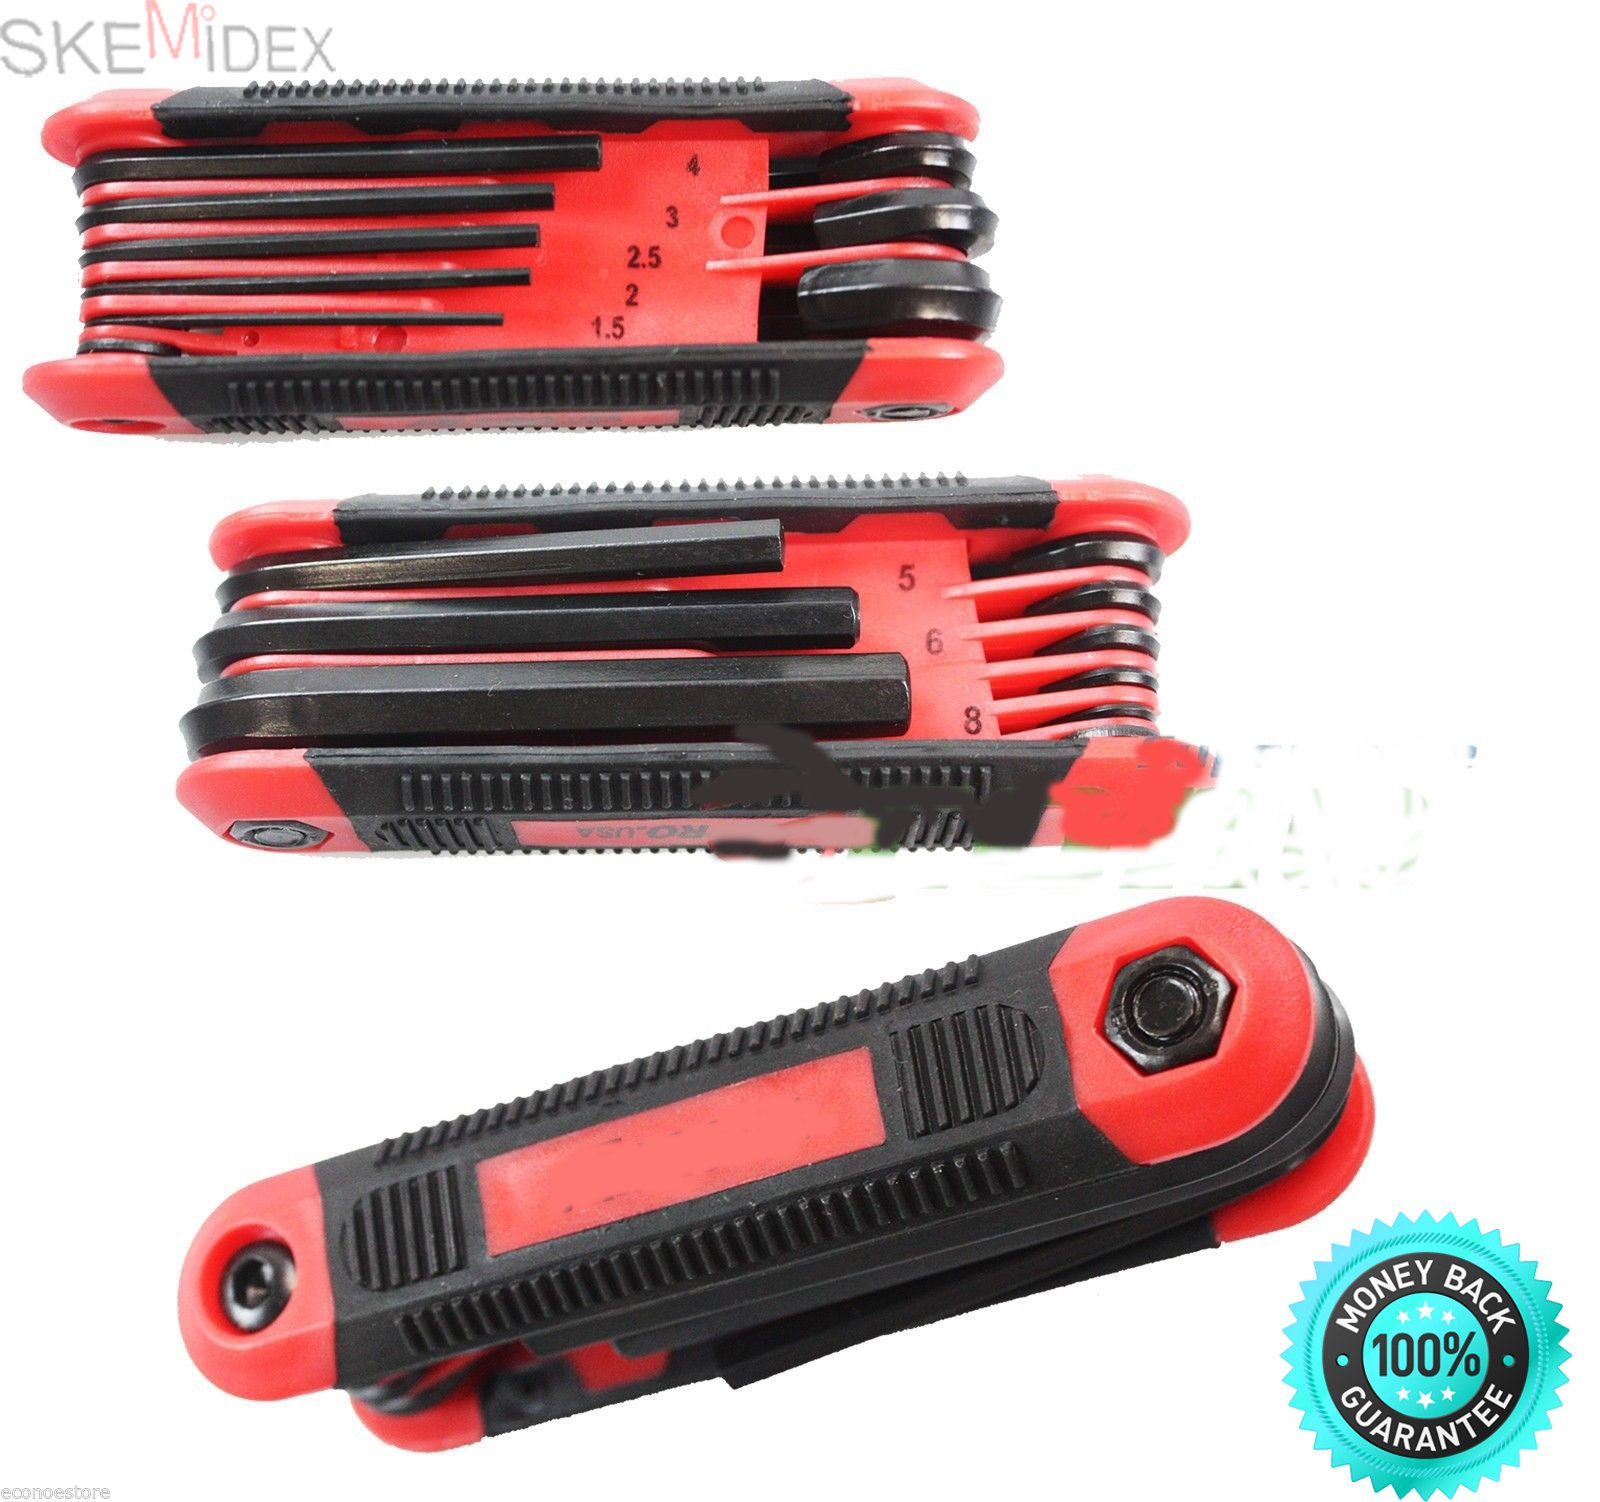 SKEMiDEX---8pcs MM Metric Folding Pocket Hex Allen Key Wrench Driver Set Easy Grip New. Foldable design, for easy storage Strong PVC handle Torx end design with pin hole Rubberized handle